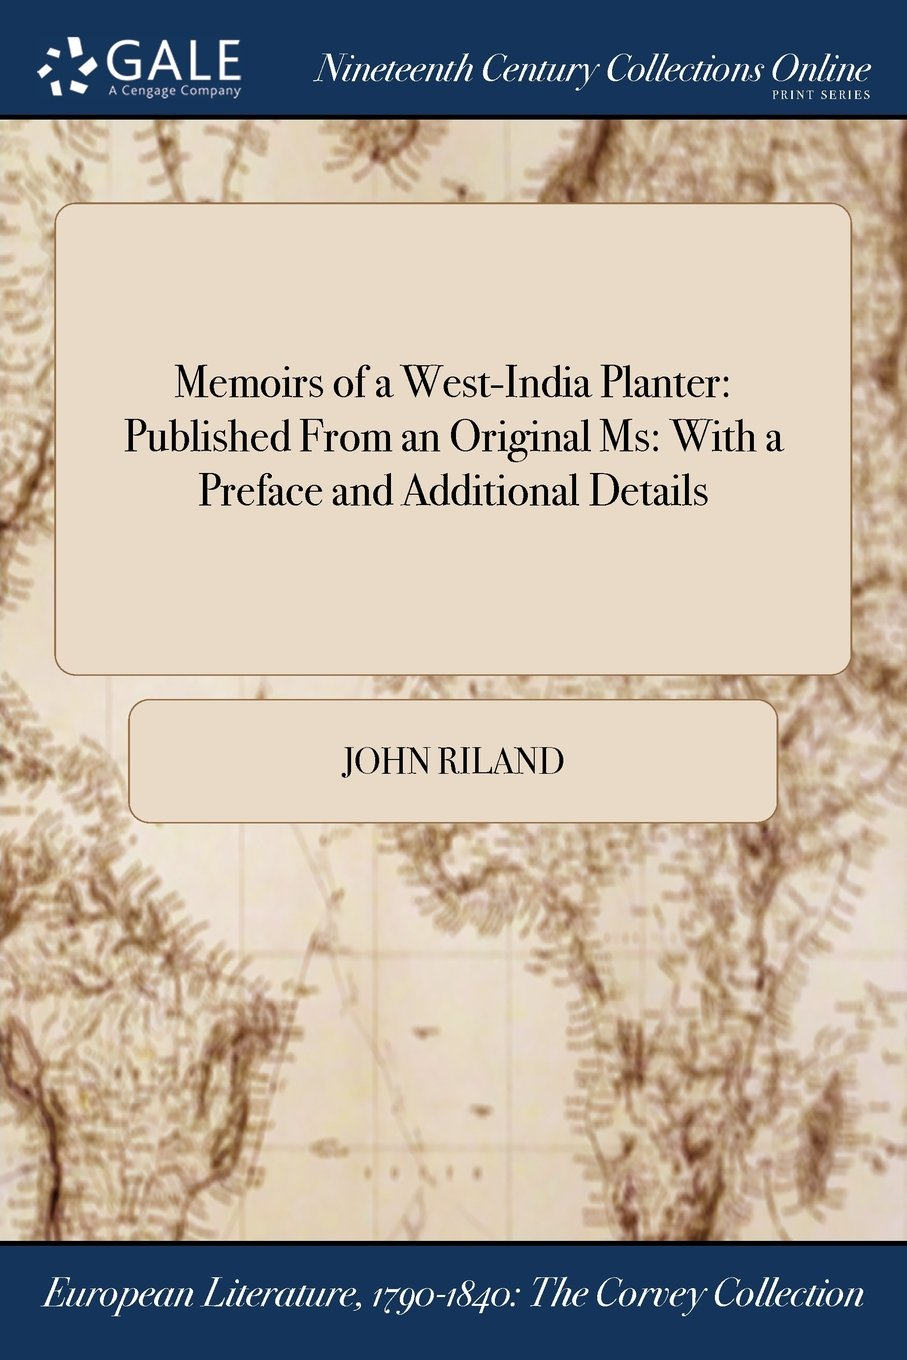 Download Memoirs of a West-India Planter: Published From an Original Ms: With a Preface and Additional Details ebook